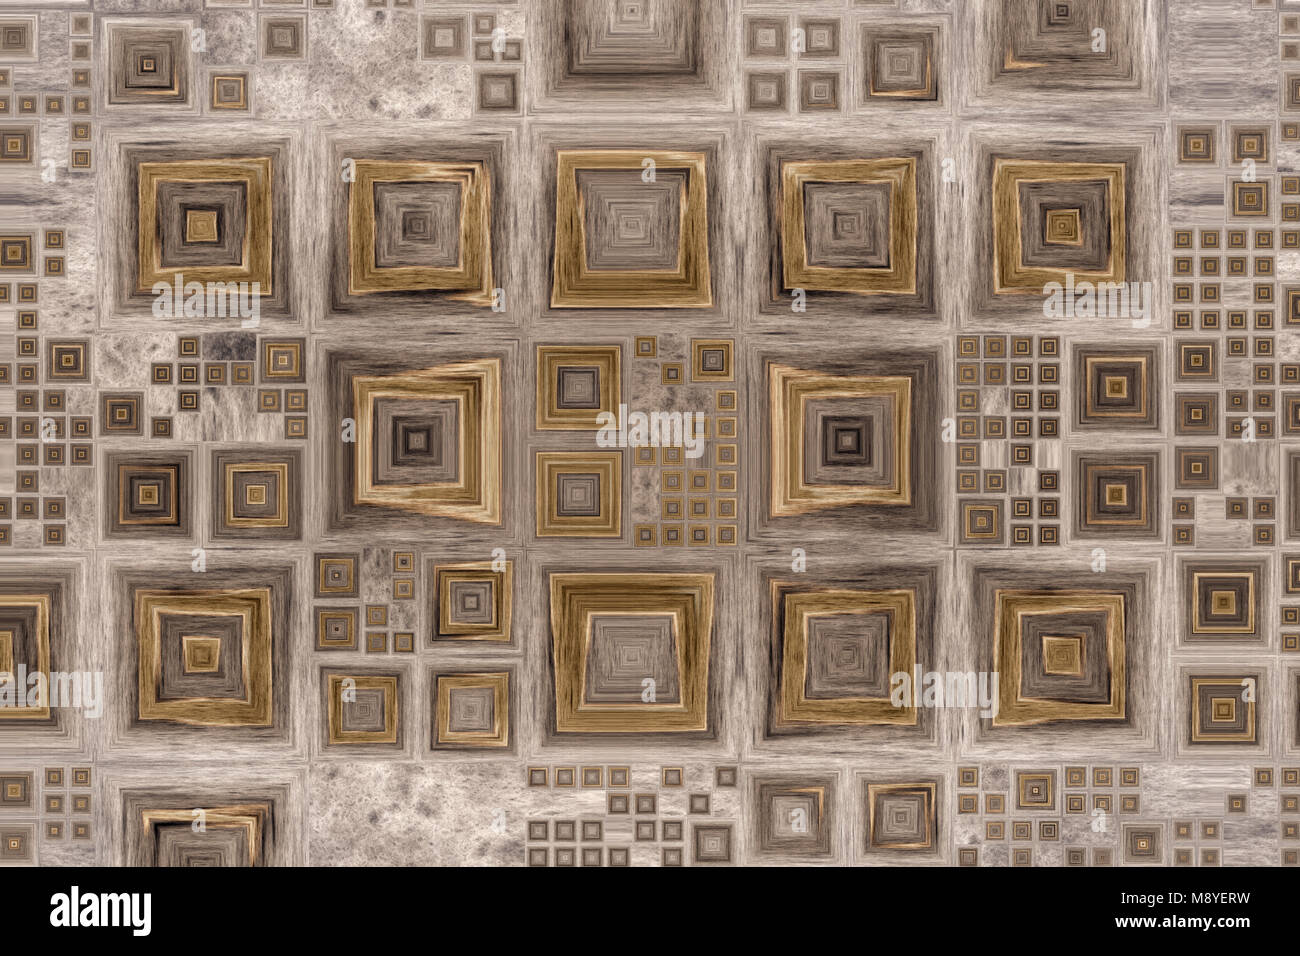 Grid of different size squares like a picture frames on a wooden ...